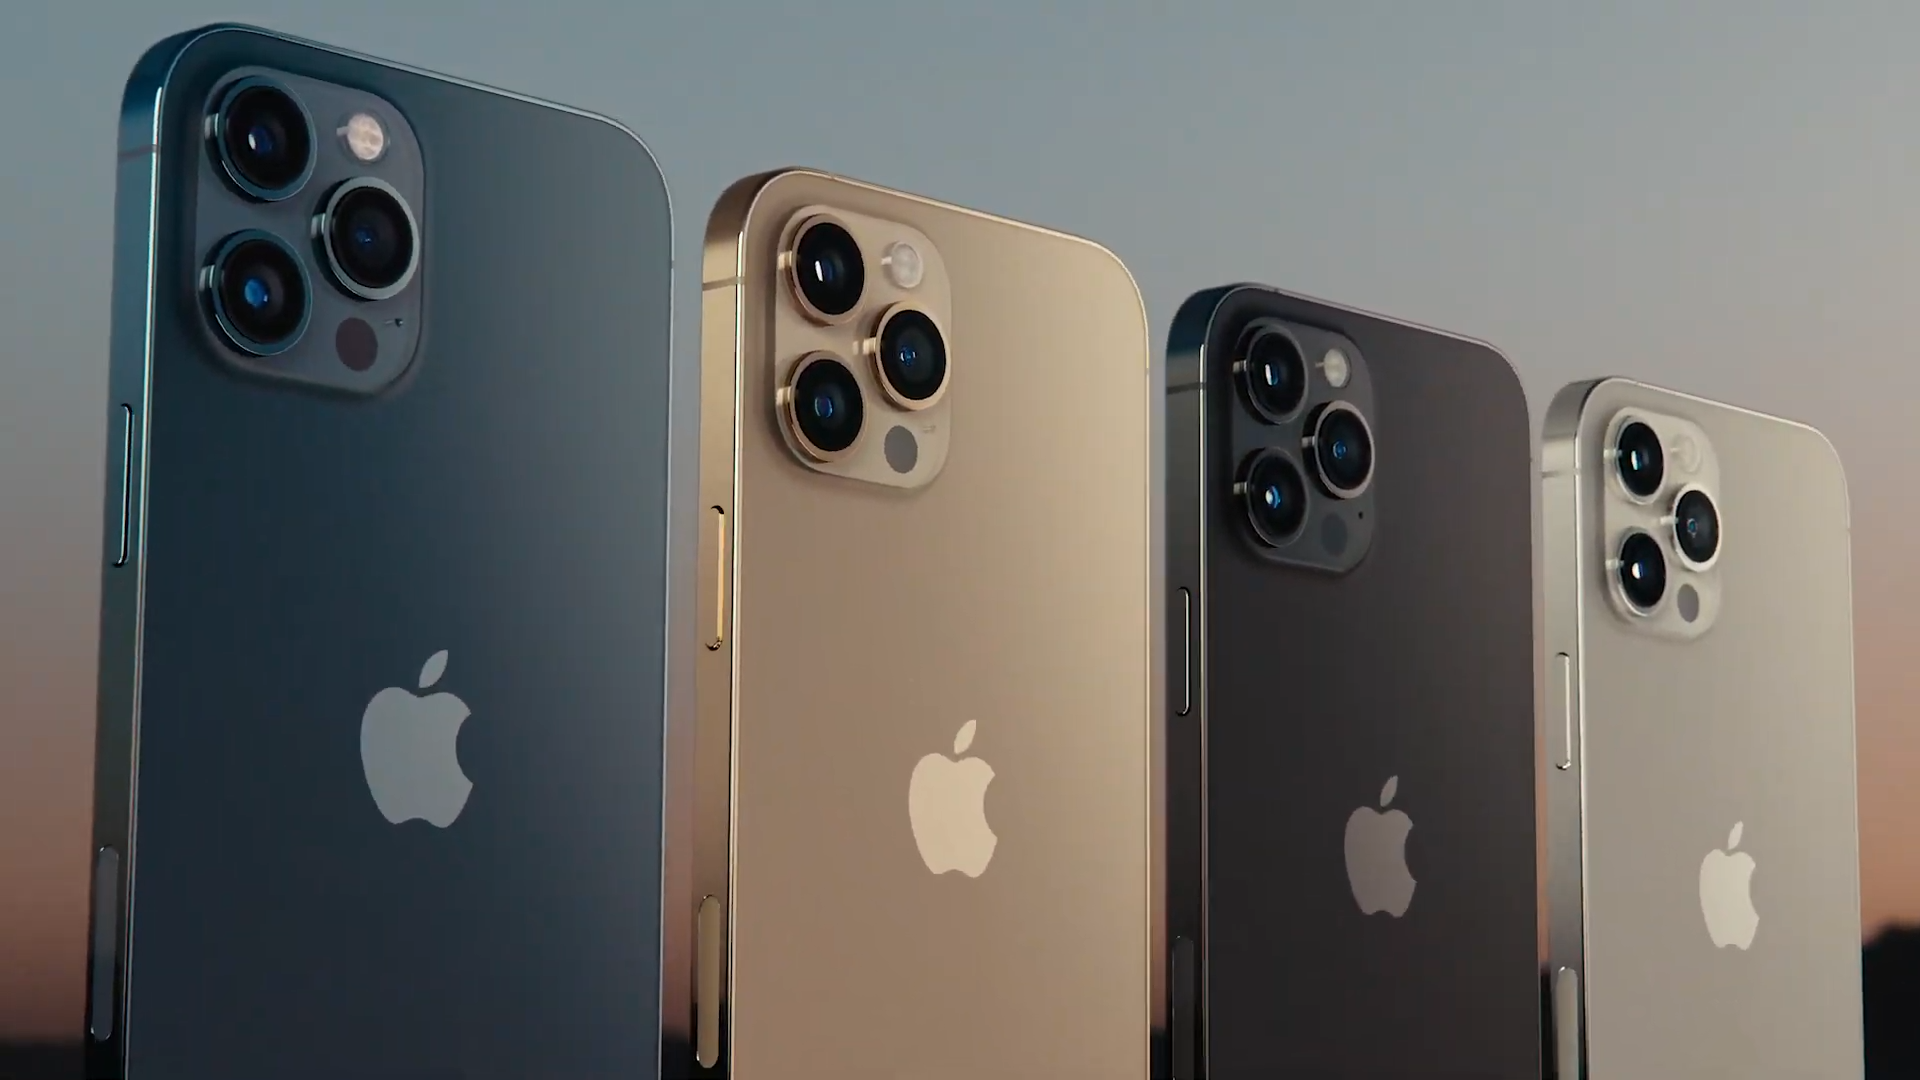 1602618035 308 Apple officially unveils iPhone 12 iPhone 12 mini iPhone 12